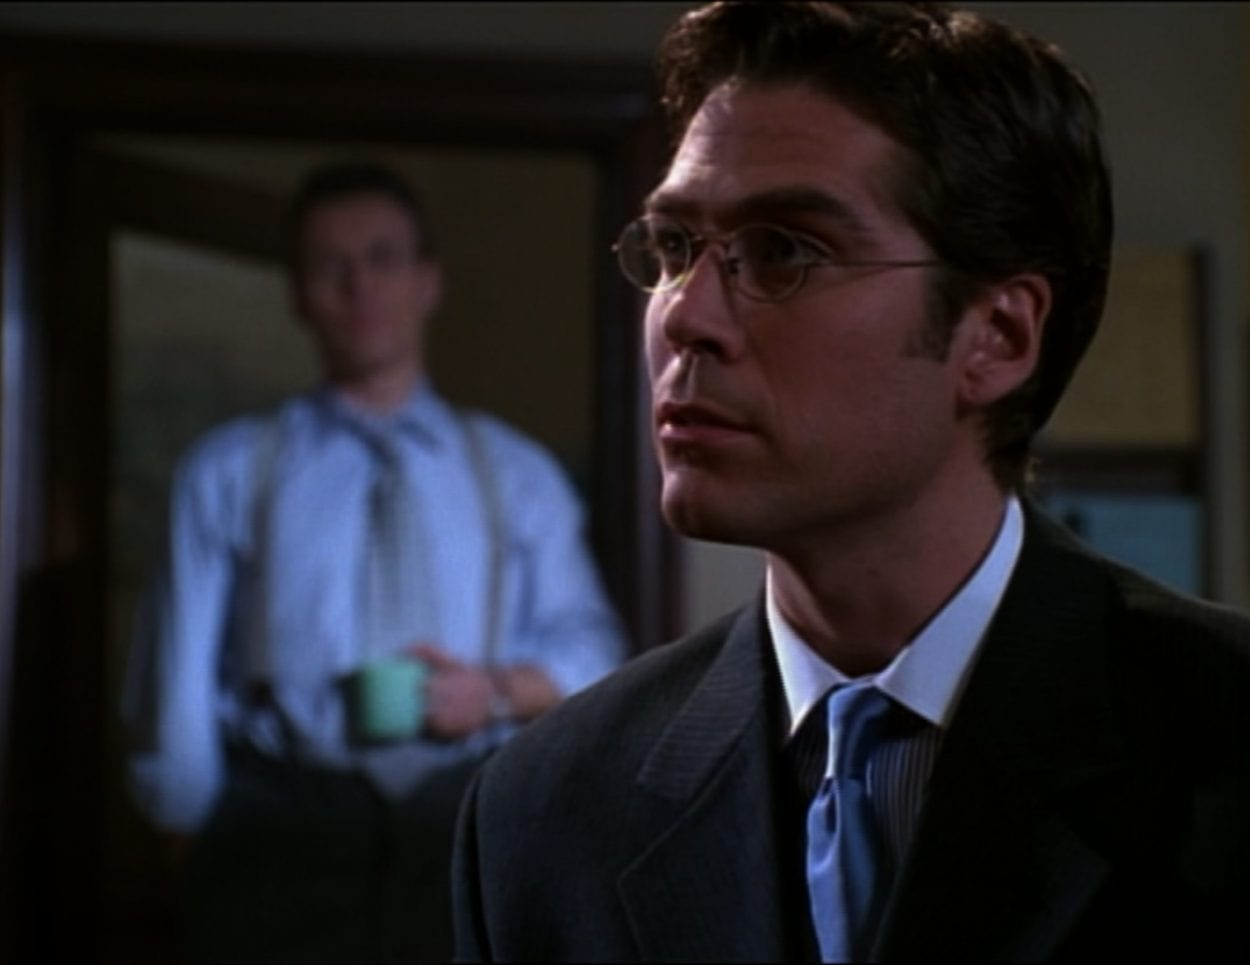 Wesley is giving advice in Sunnydale High Library while Giles looks on